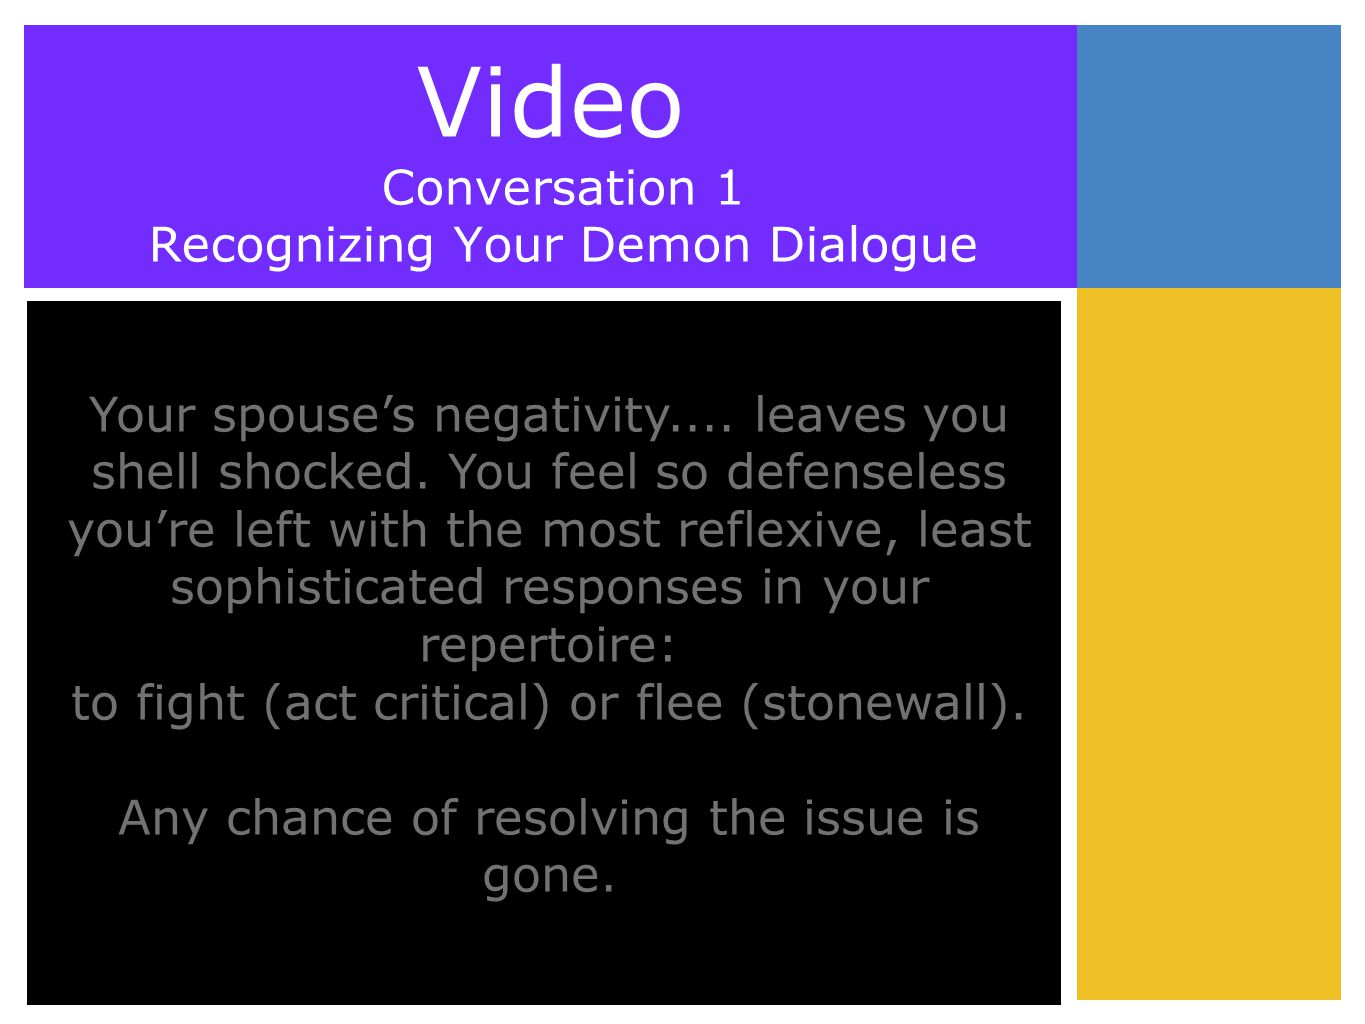 Video Conversation 1 Recognizing Your Demon Dialogue Your spouse's negativity.... leaves you shell shocked. You feel so defenseless you're left with t